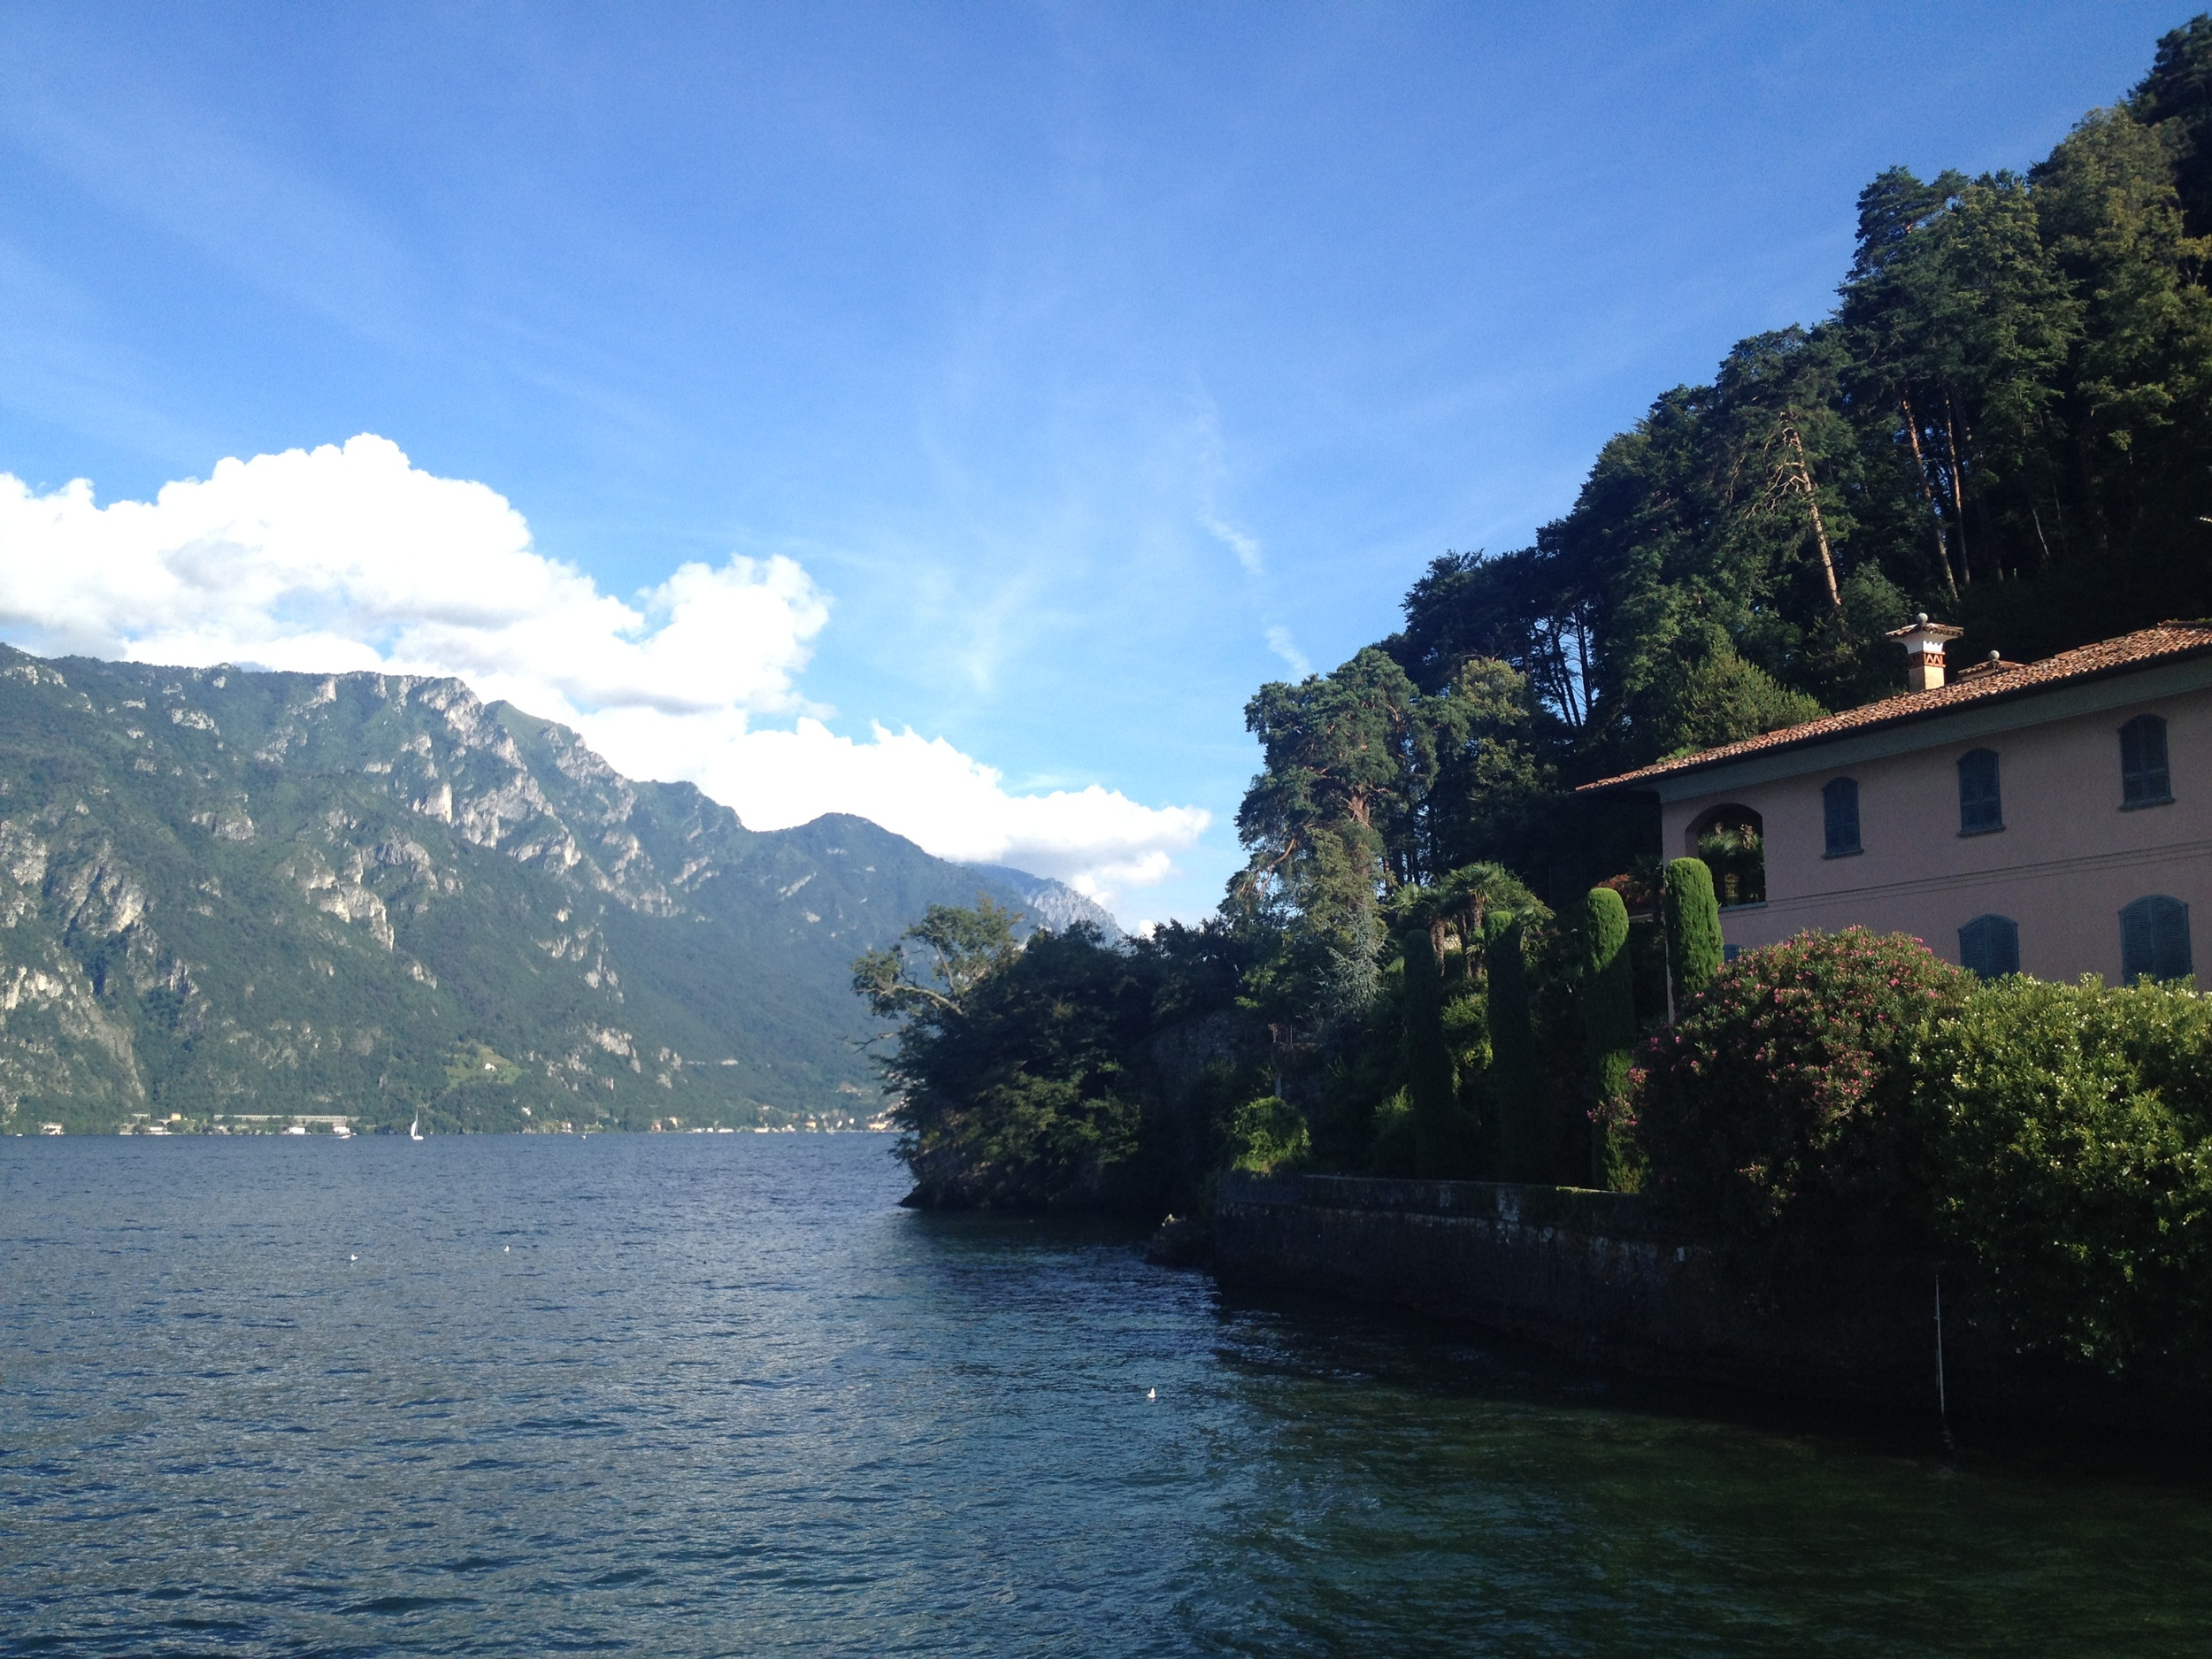 Lake Como. Not pictured: me falling in.